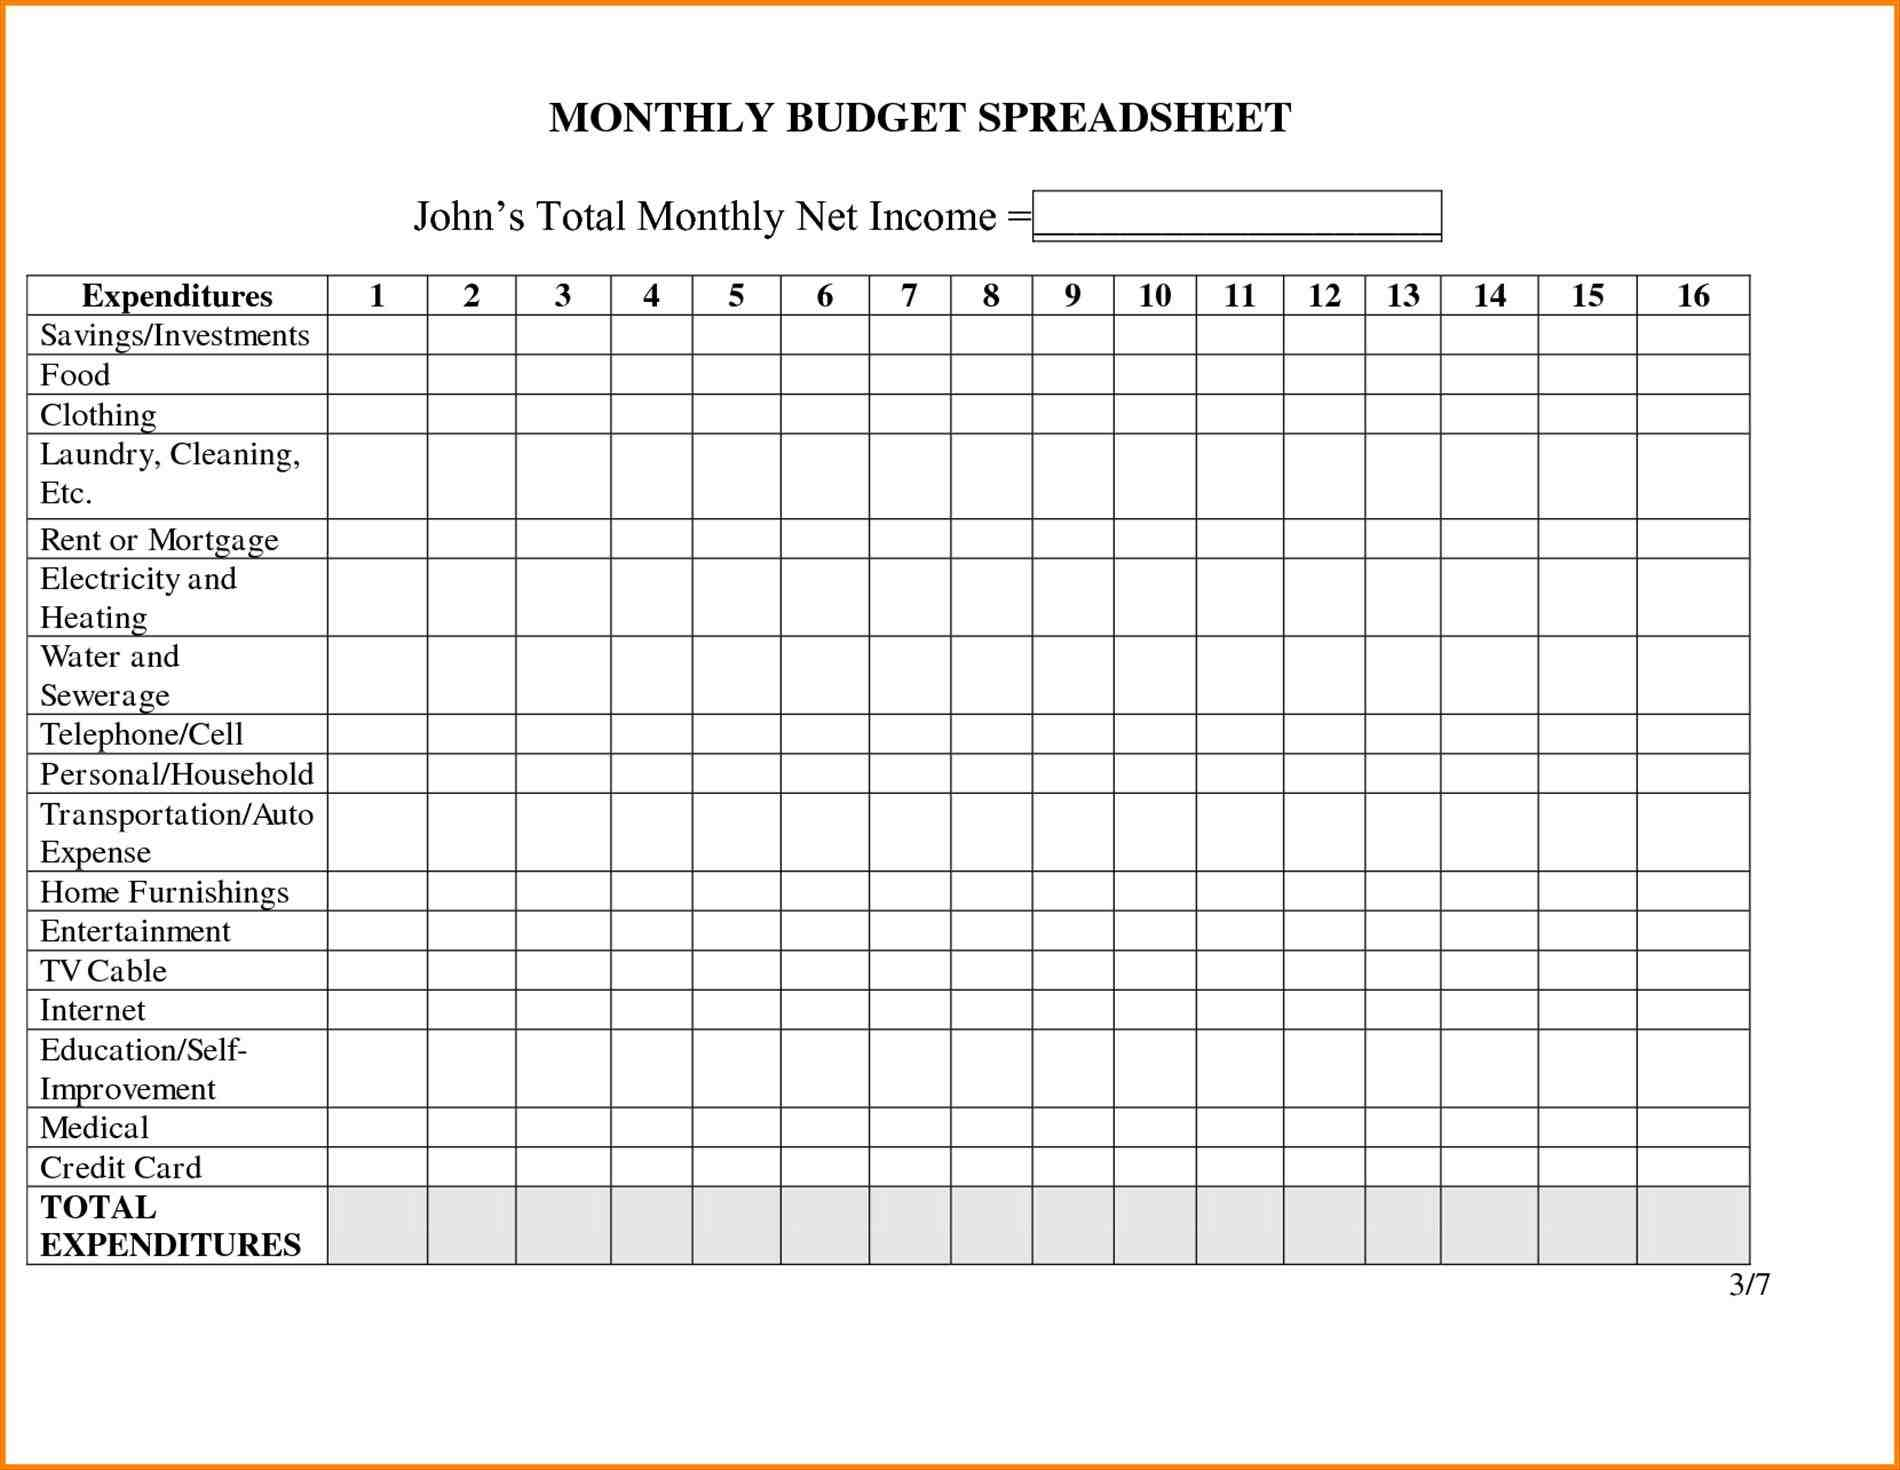 of making a family budget worksheet blank personal monthly for the home pinterest blank Family Monthly Expense Calculator Worksheet personal